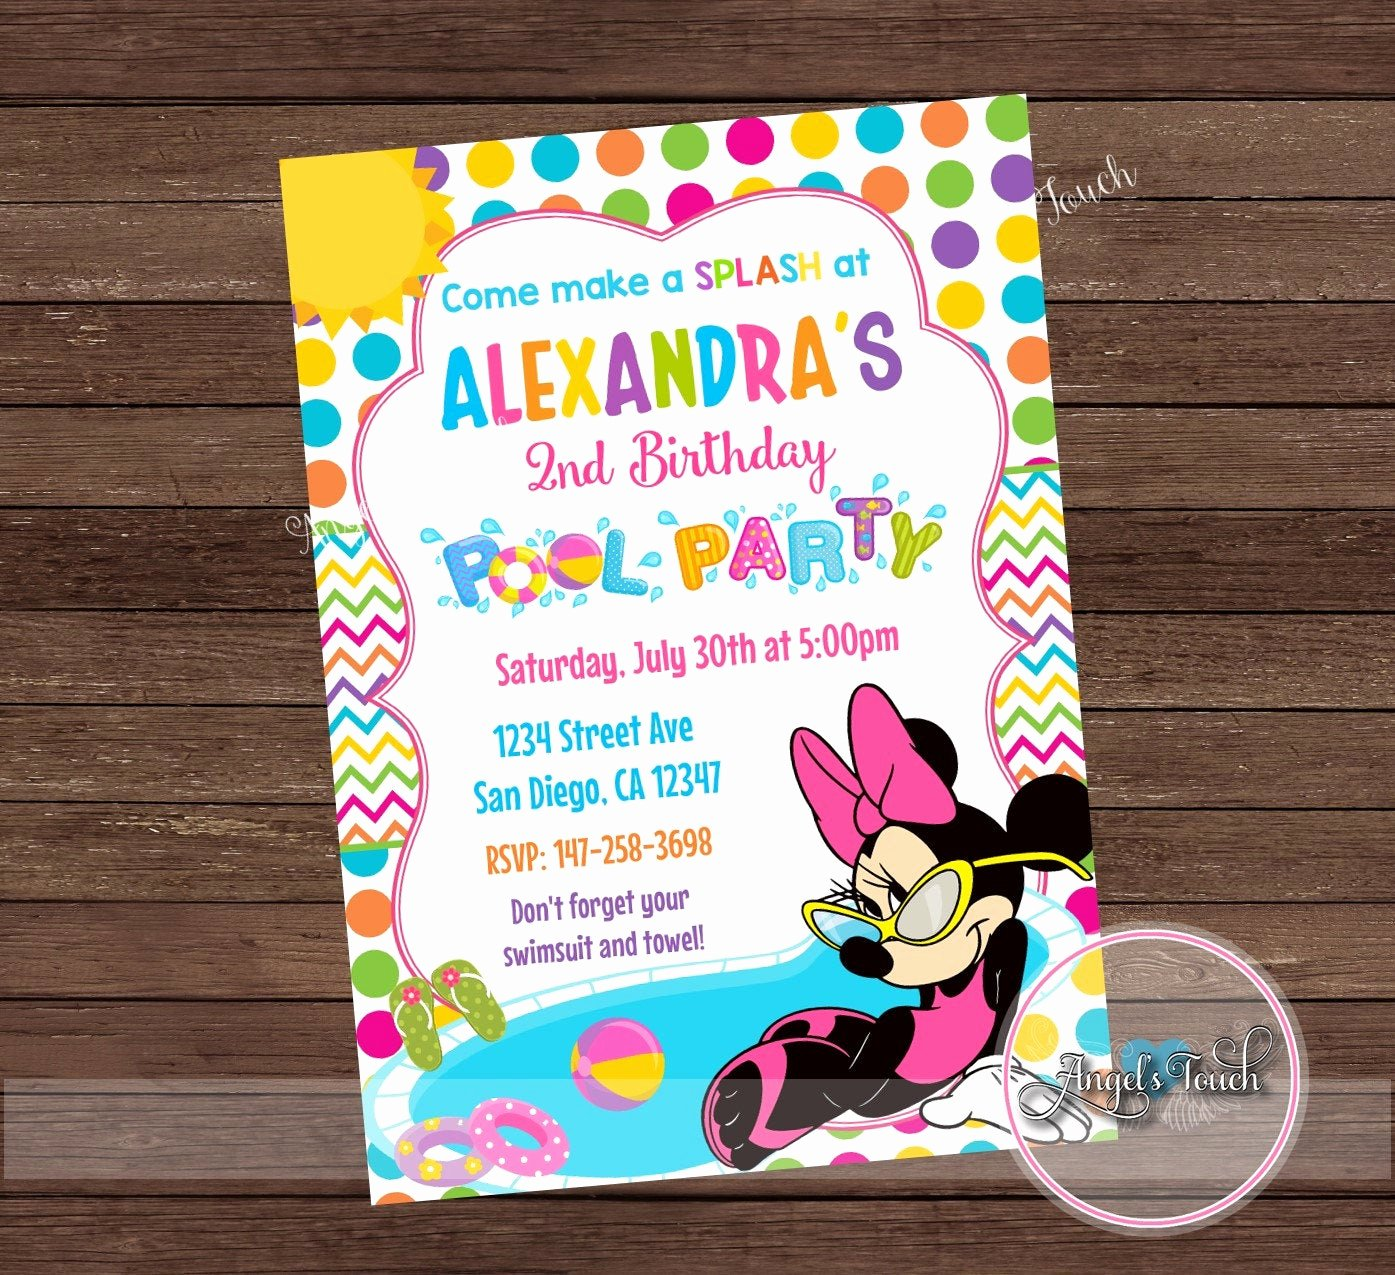 Minnie Mouse Pool Party Invitations Awesome Minnie Mouse Pool Party Invitation Minnie Mouse Birthday